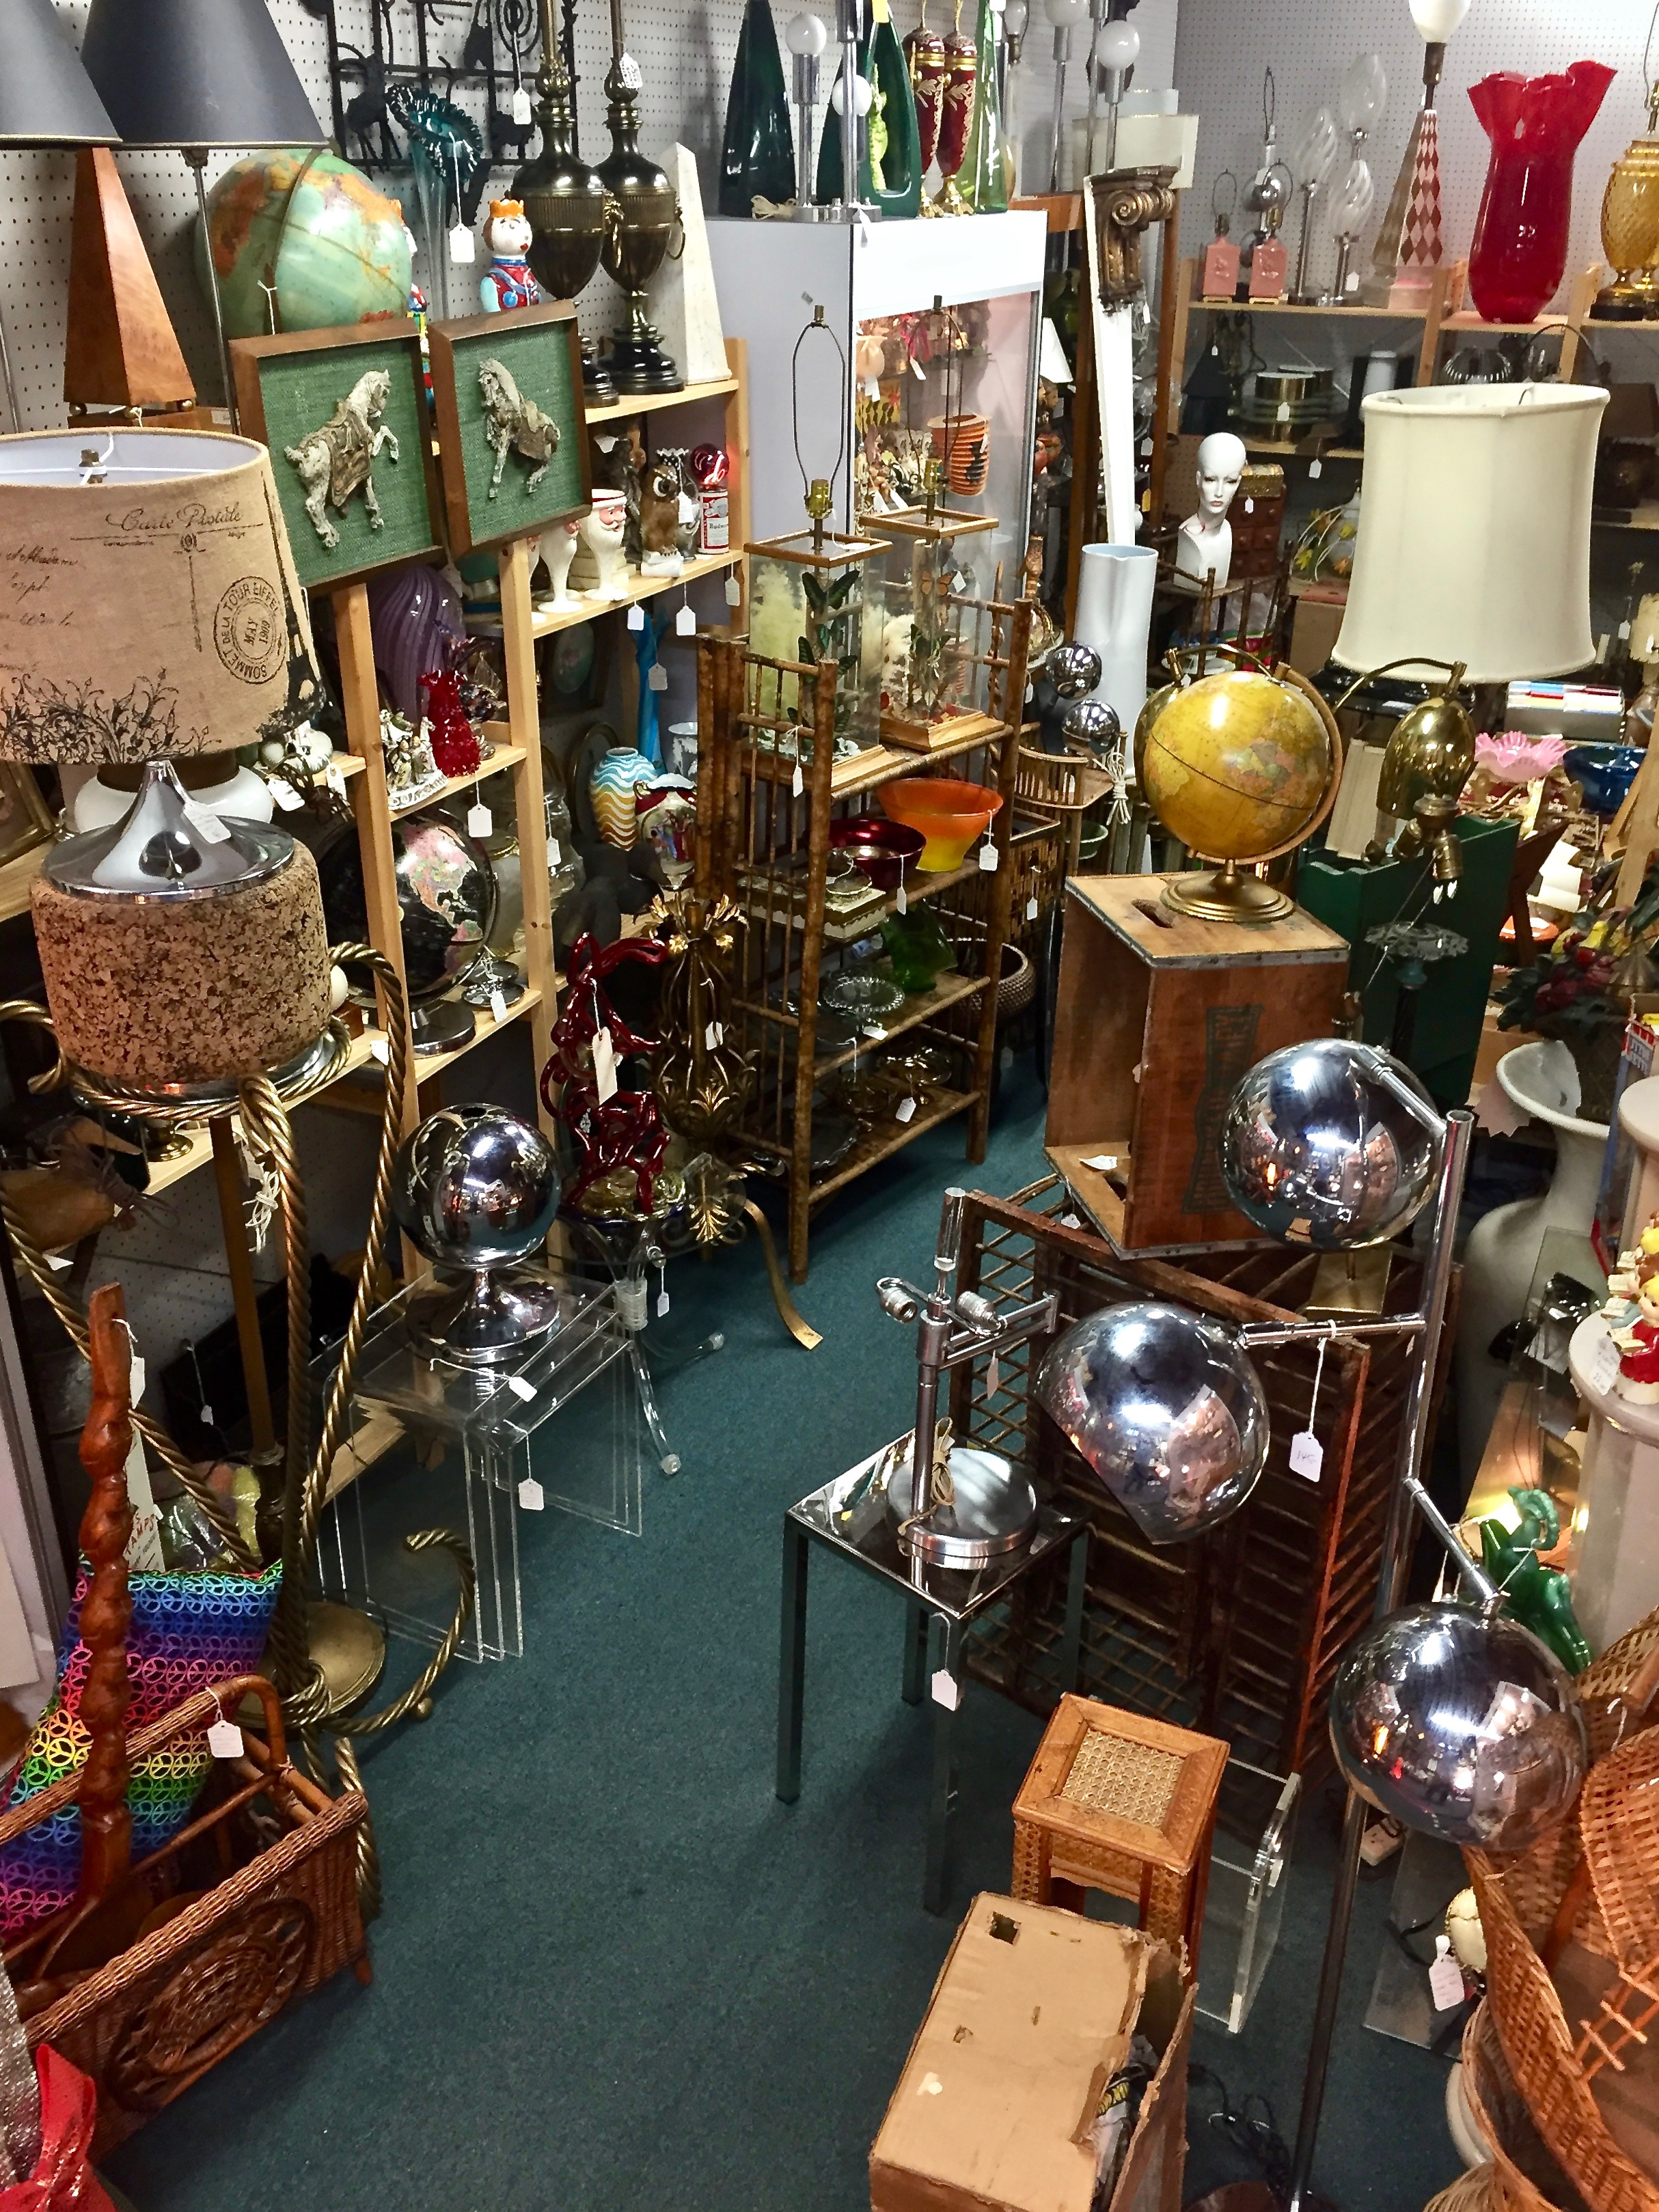 ANOTHER TIME ANTIQUES   Len Campobello began selling antiques in Manhattan in 1991, and for 22 years set up on weekends at The Garage Antique Center. Len specializes in mid-century modern, antiques and the unusual, and is particularly mad for Christmas and other holiday items. Another Time Antiques also offers timeless clothing from 1800s Victorian to 1980s vintage. Len's booths are located on the balcony and 2nd floor of the Summit Antiques Center. He also conducts house and tag sales and would be happy to help you out if you or downsizing or liquidating an estate. Contact Len at Nnjtop4u@aol.com.